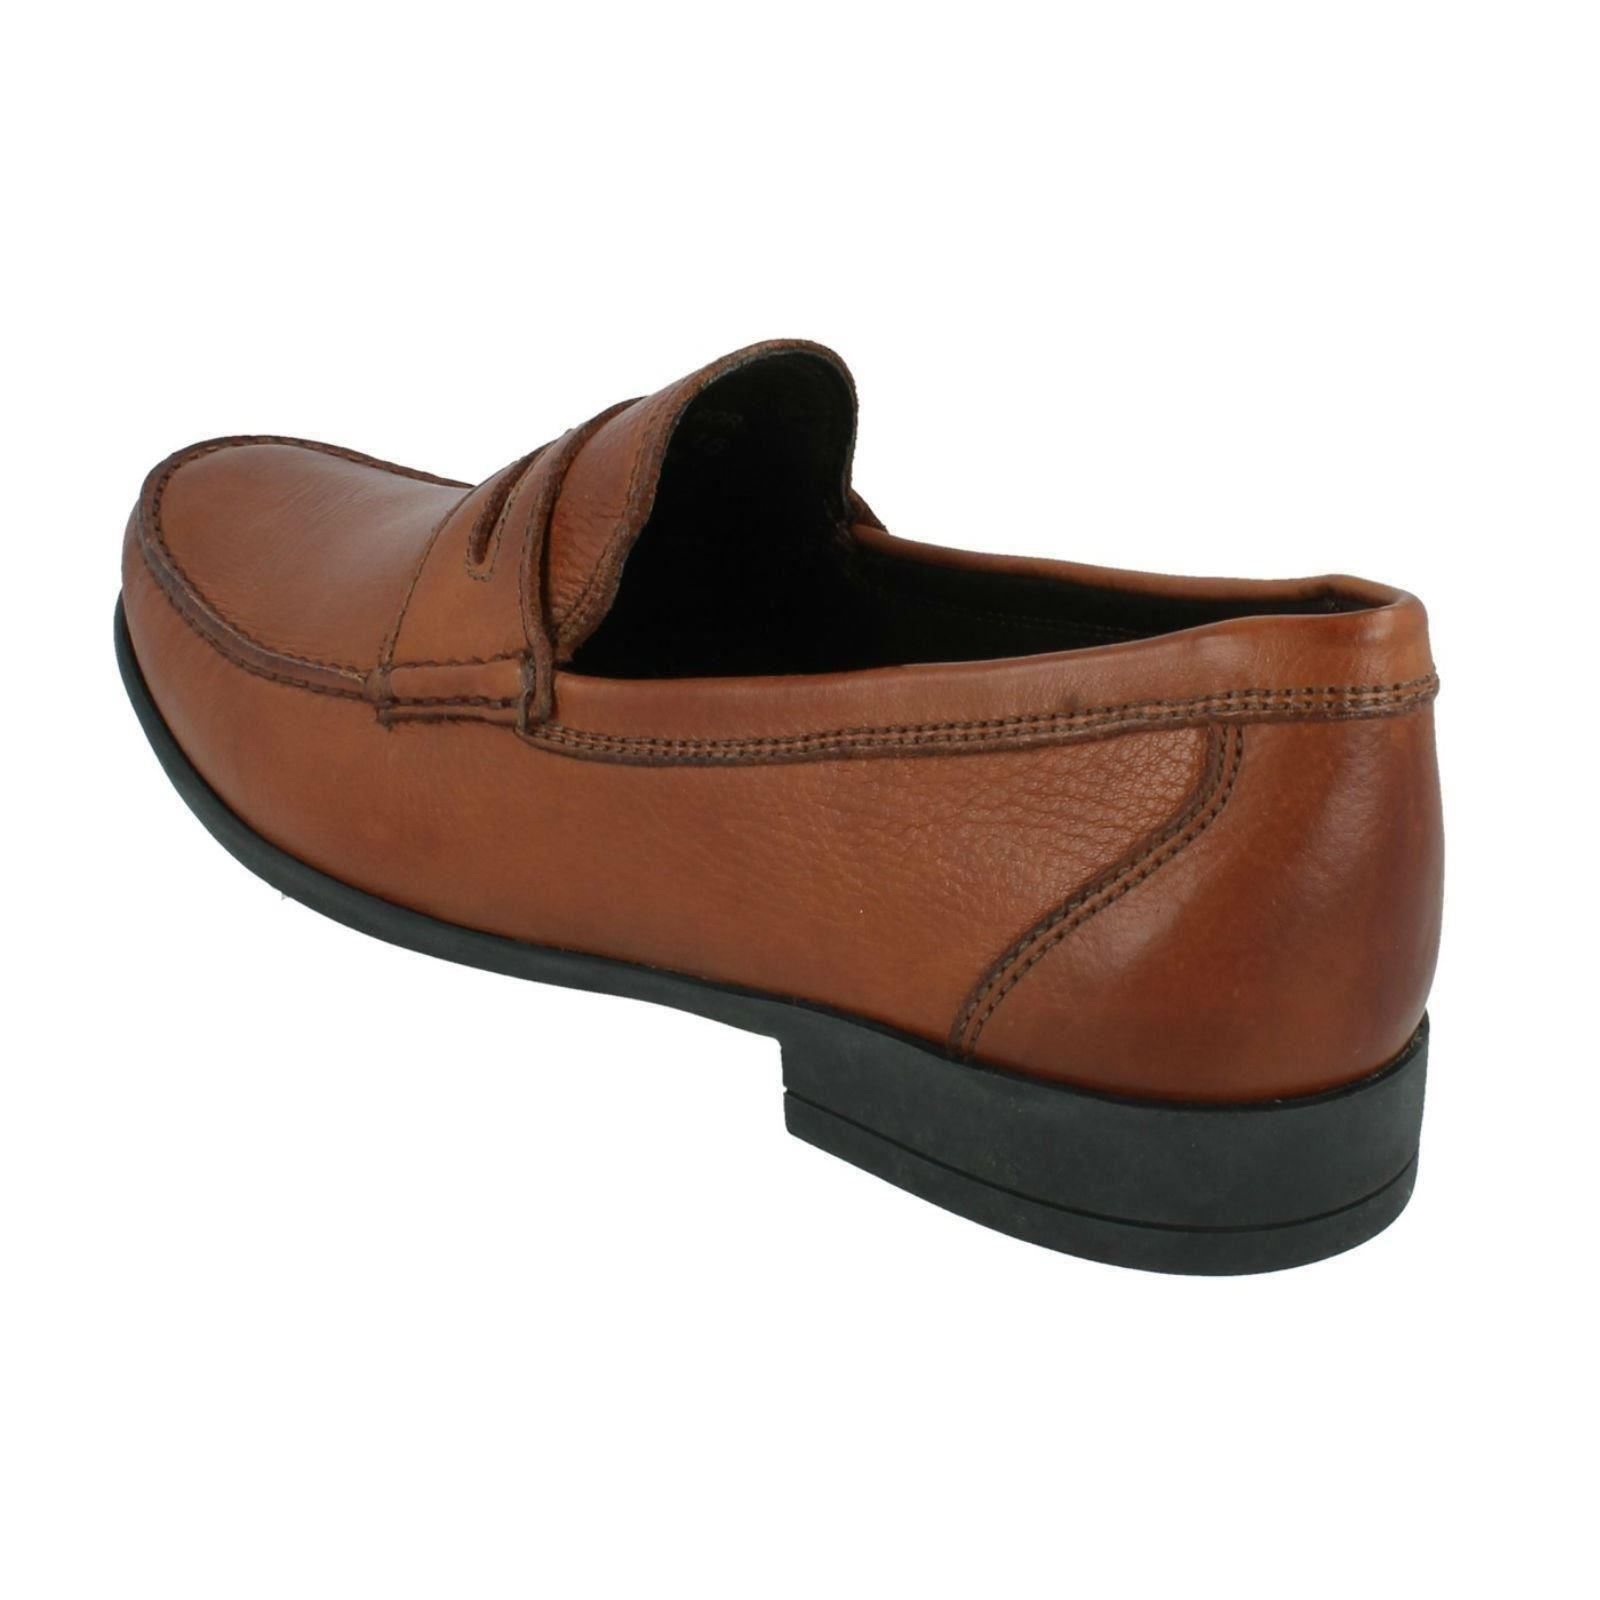 Mens Anatomic & Co Moccasin Loafers Label - Castelo